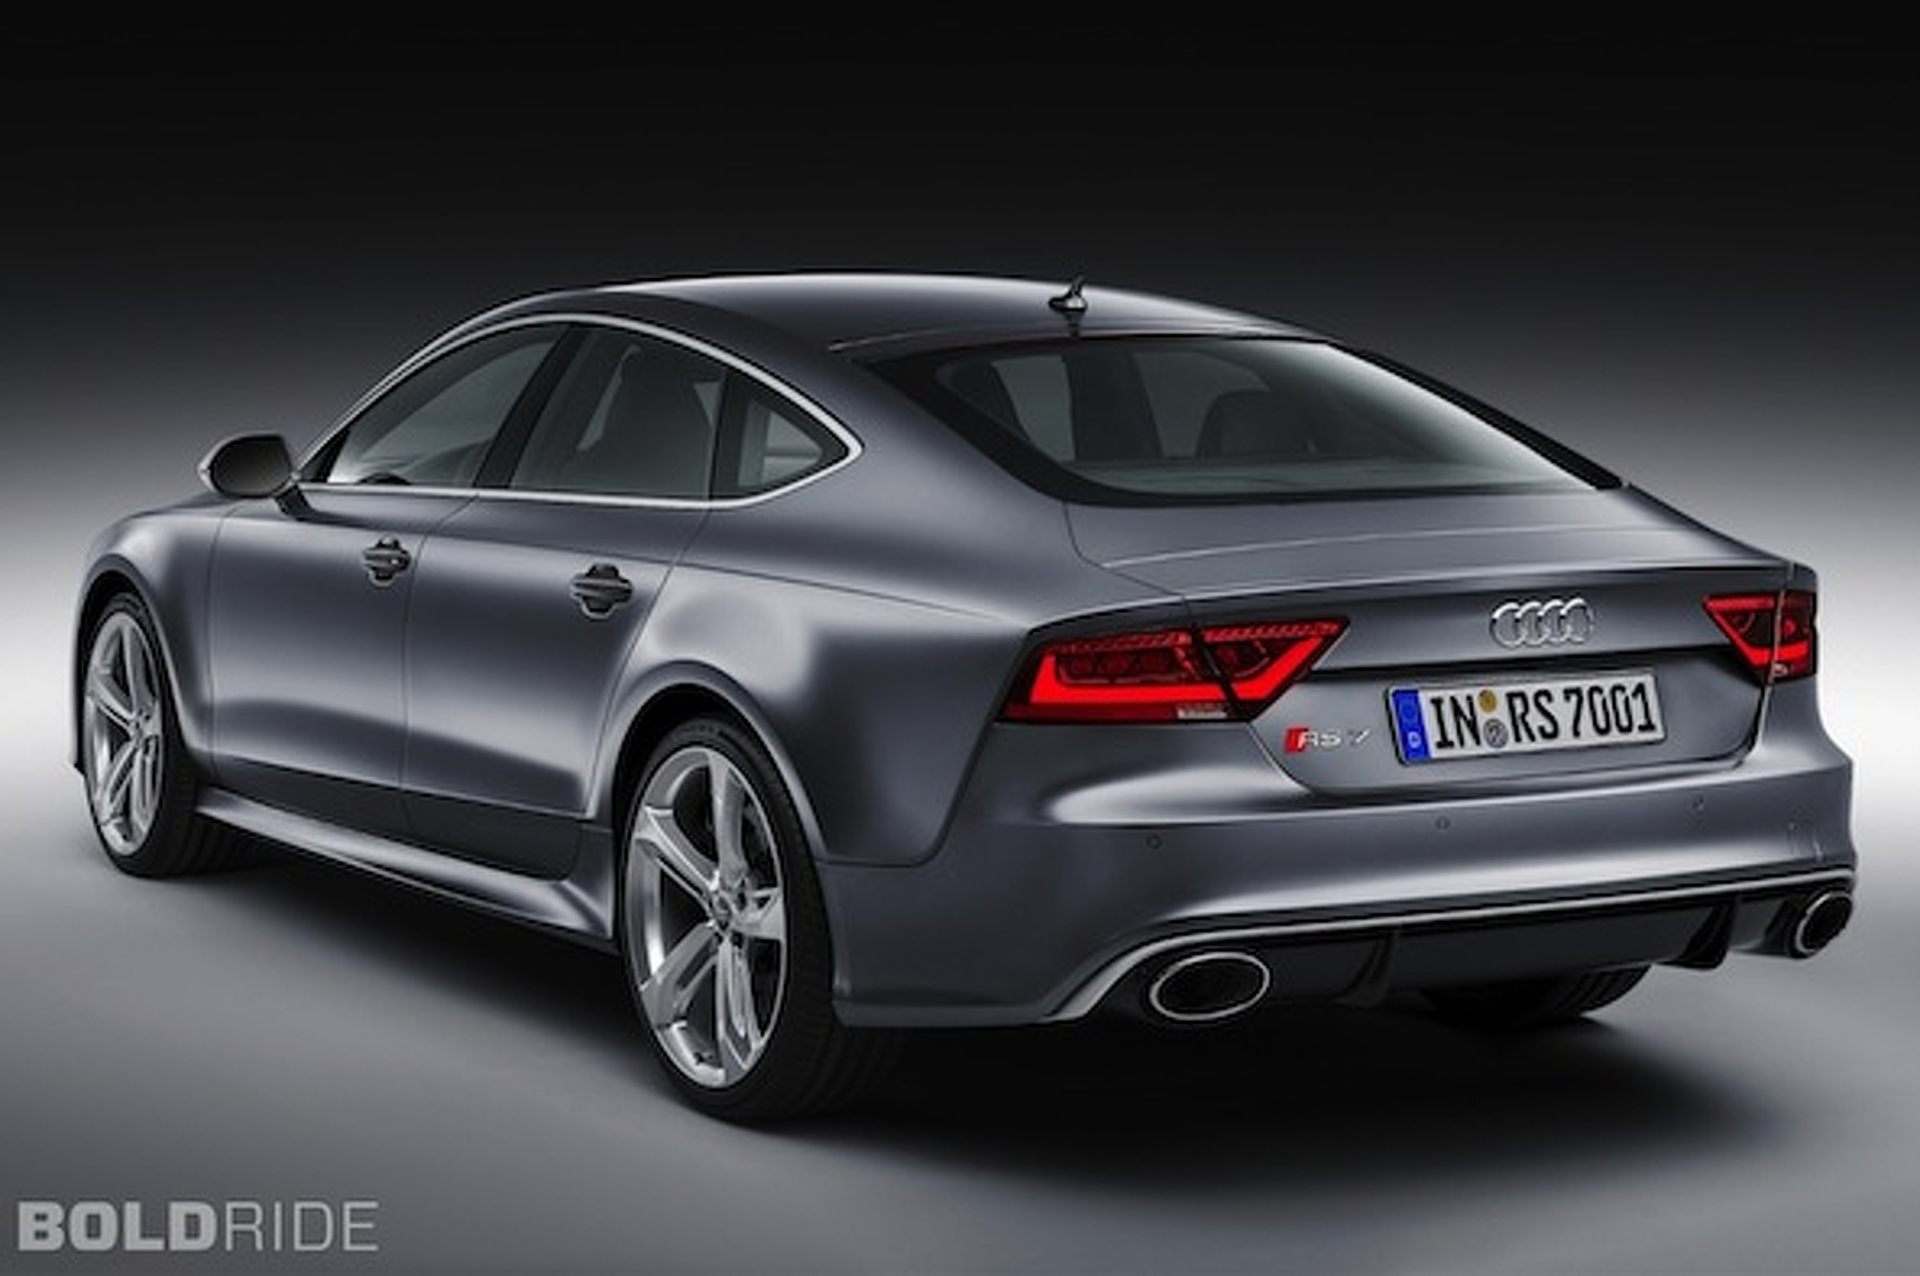 This Is The 2014 Audi RS 7 Sportback; Sell Your Children